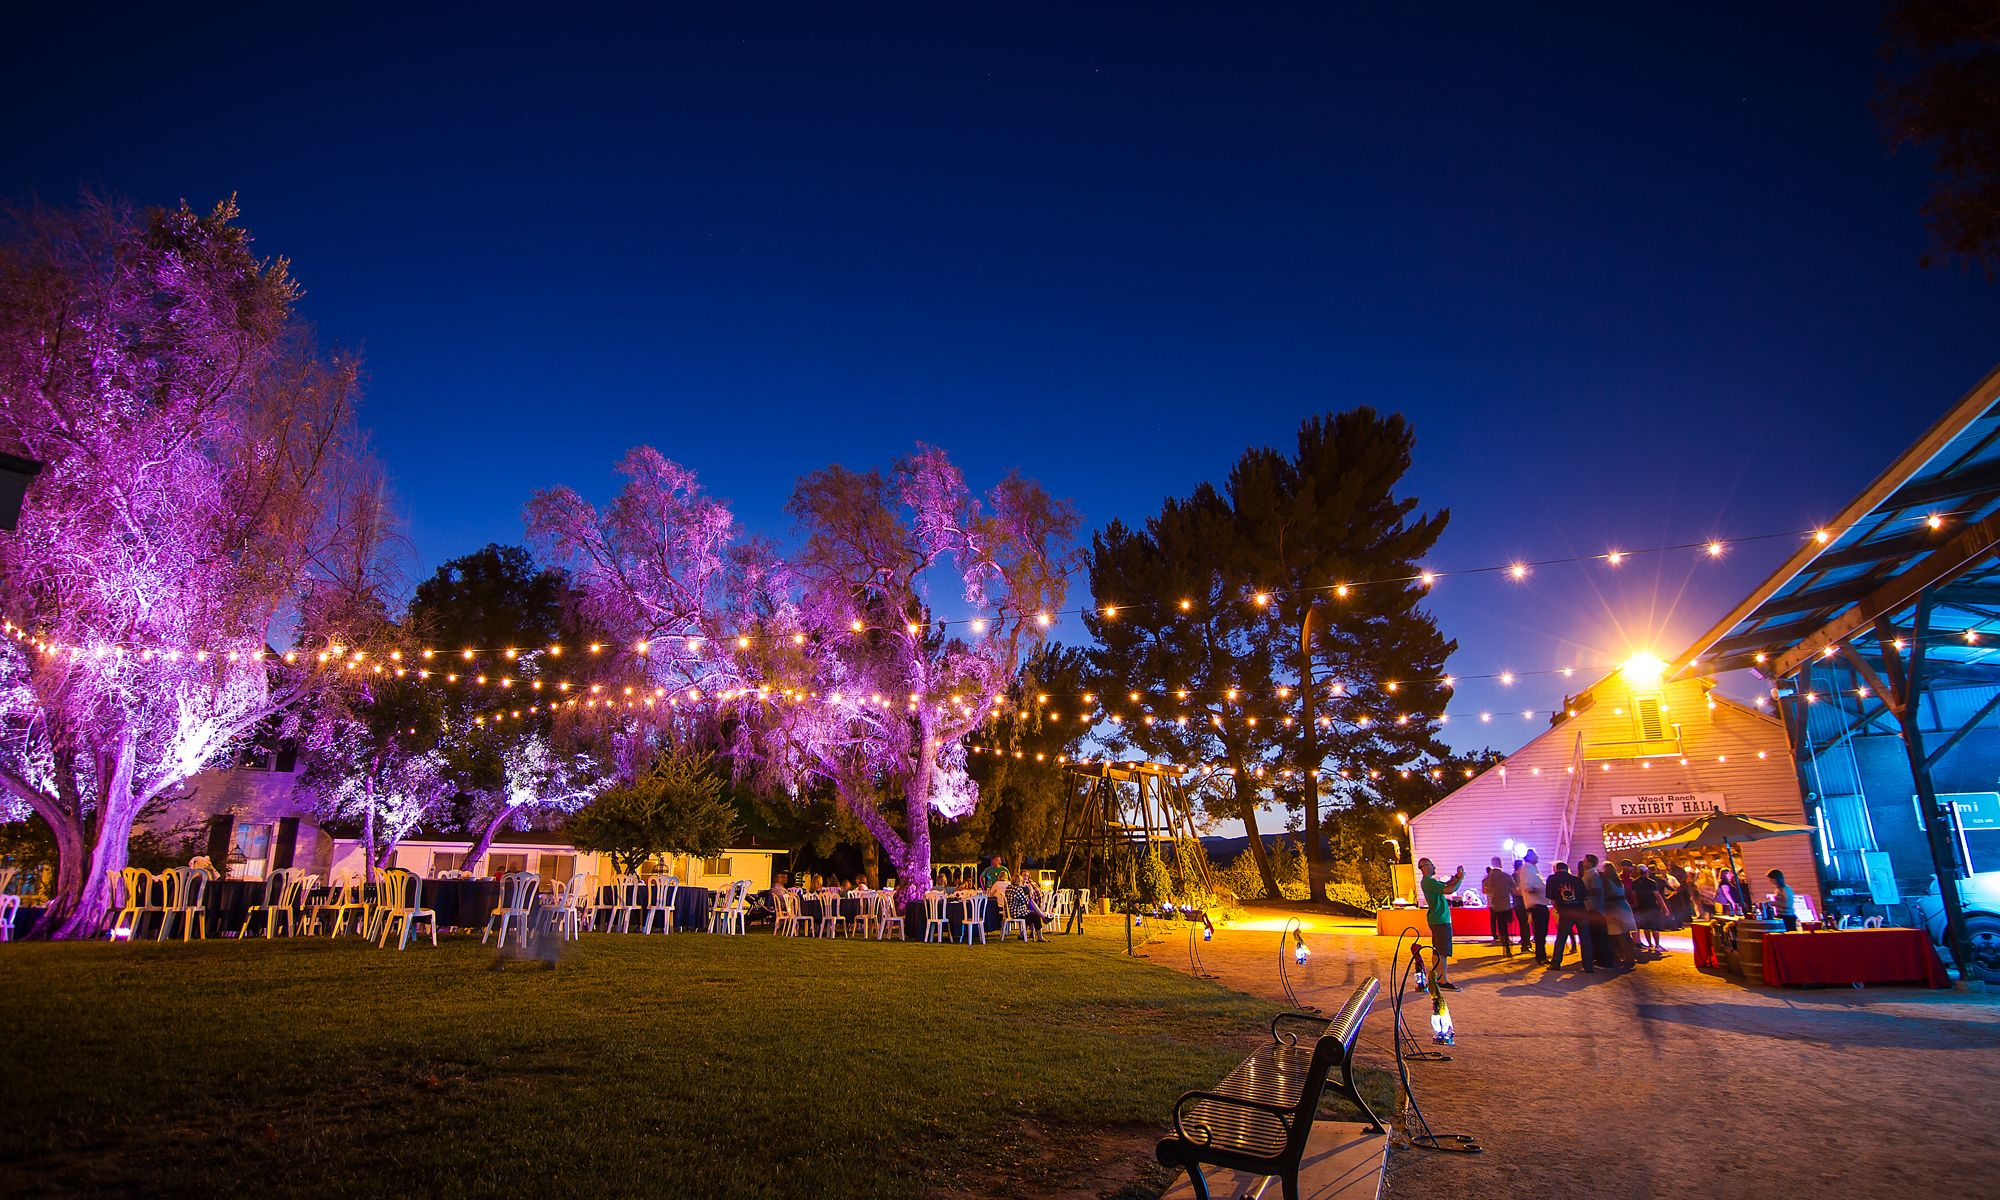 Special Event Lighting - BumbleBee Foundation